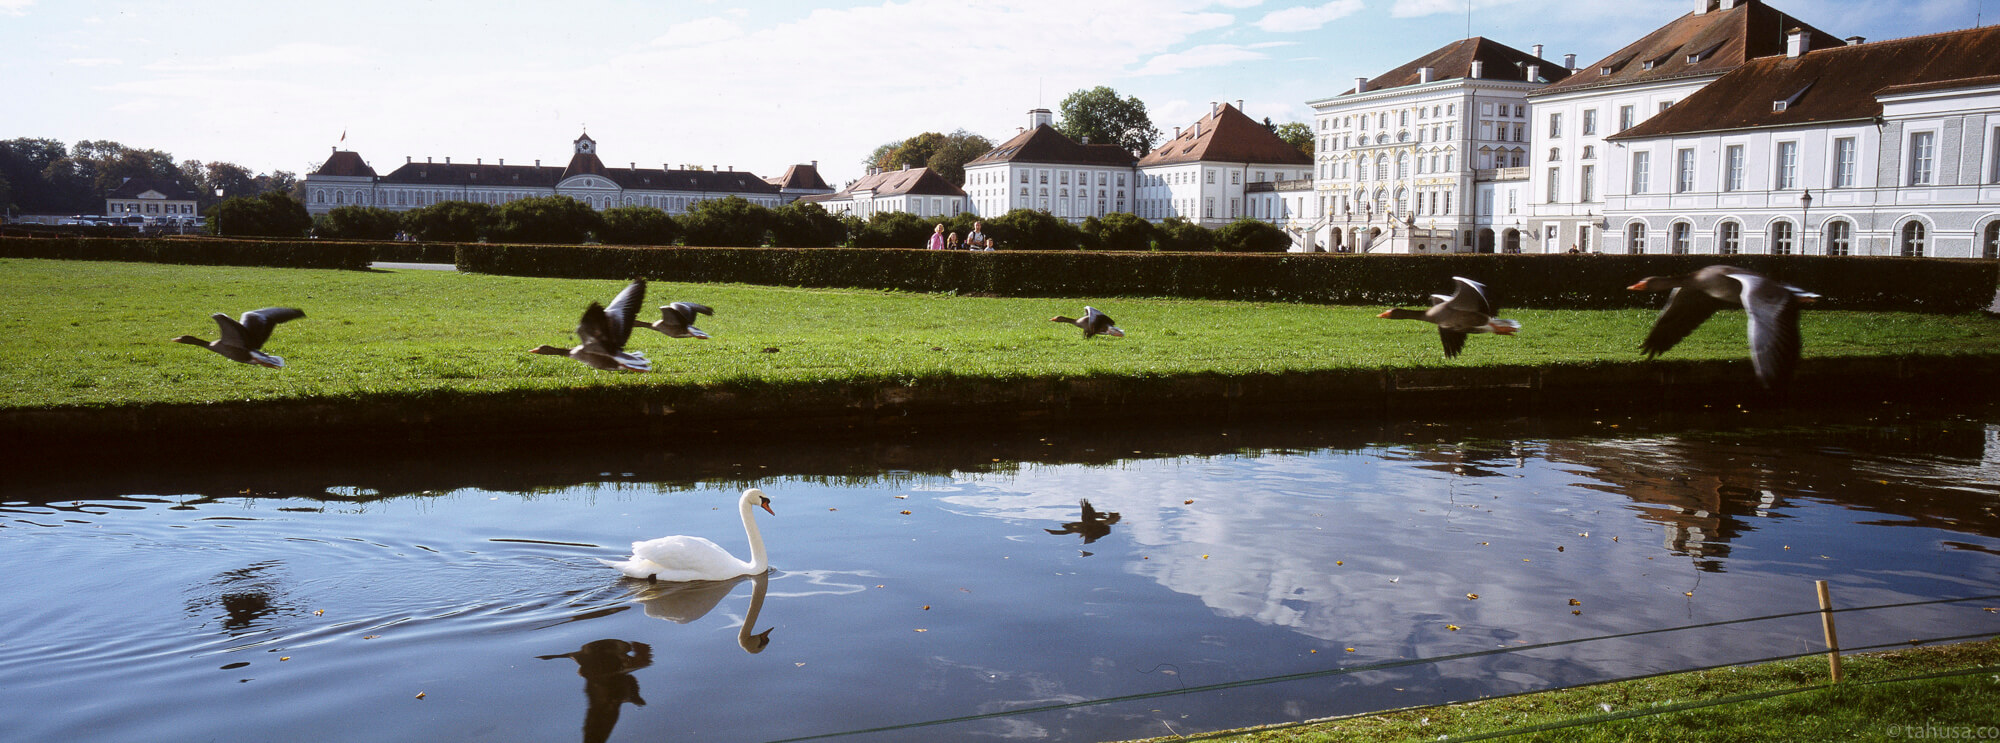 birds-goose-flying-over-bypass-scene-Munich-Germany-Nymphenburg Palace-Germany-slide-Hasselblad-xpan-xpanii-45mm-f4-lens-pano-panoramic-panorama-Long-format-135-film-Fuji-Fujifilm-Provia-RDPIII-RDP-100F